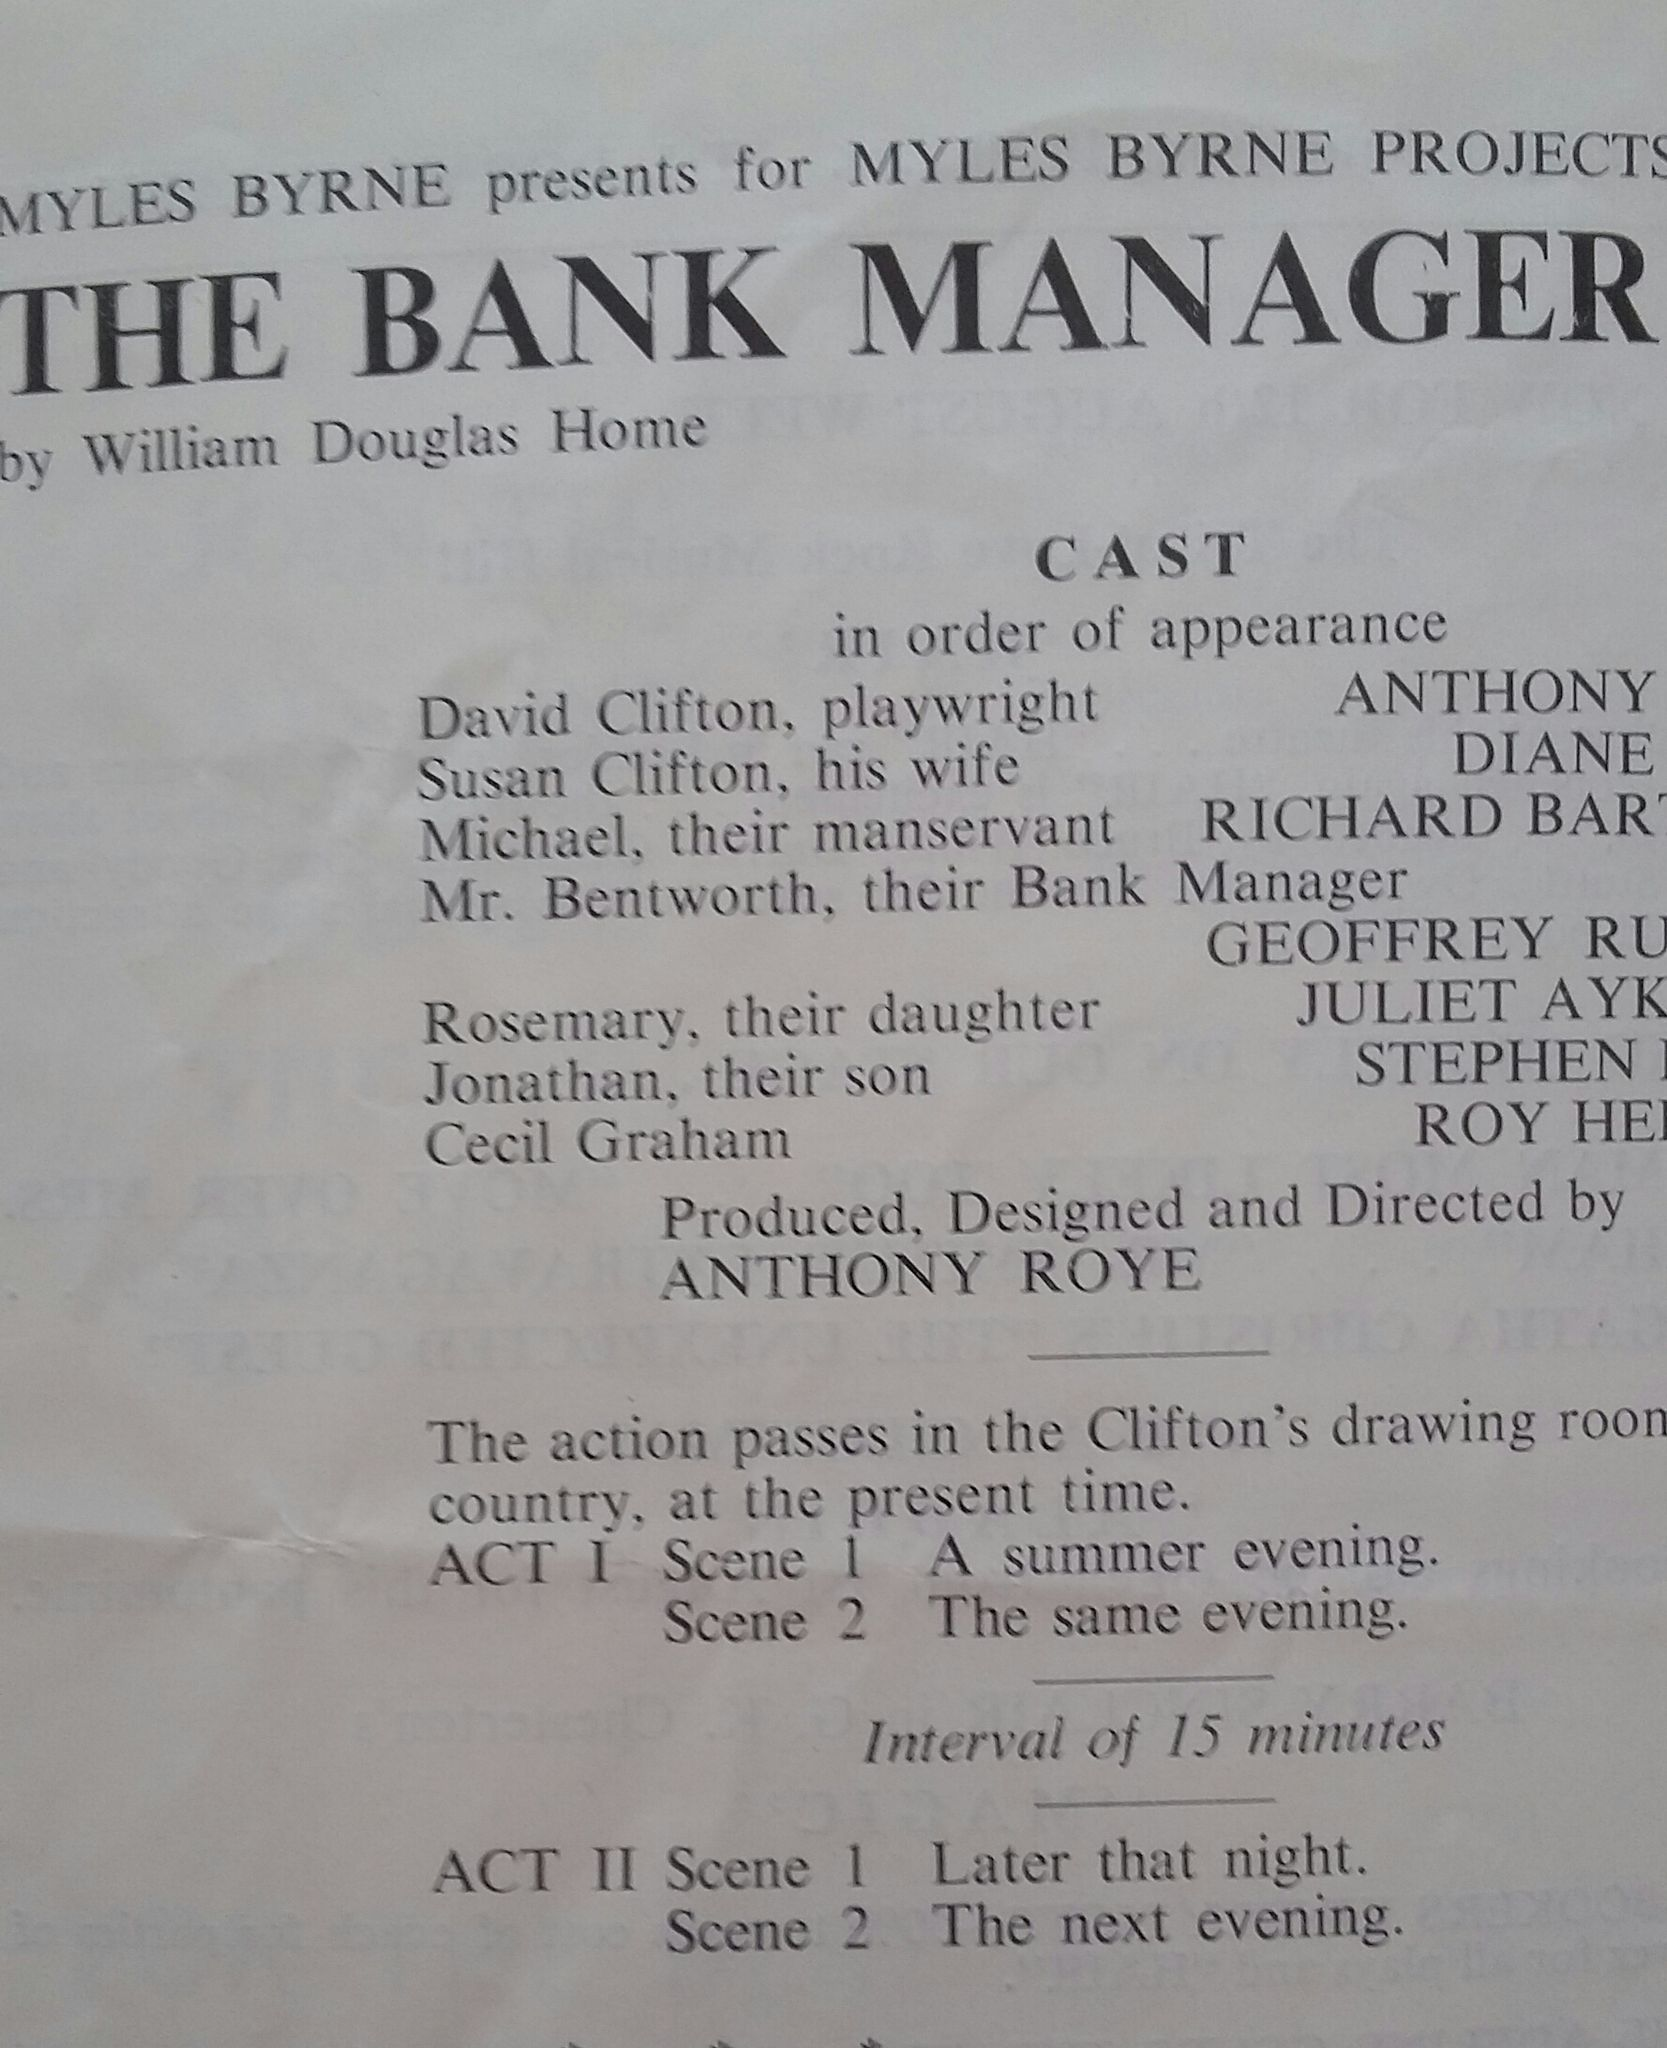 The Bank Manager. Directed By Antony Roye